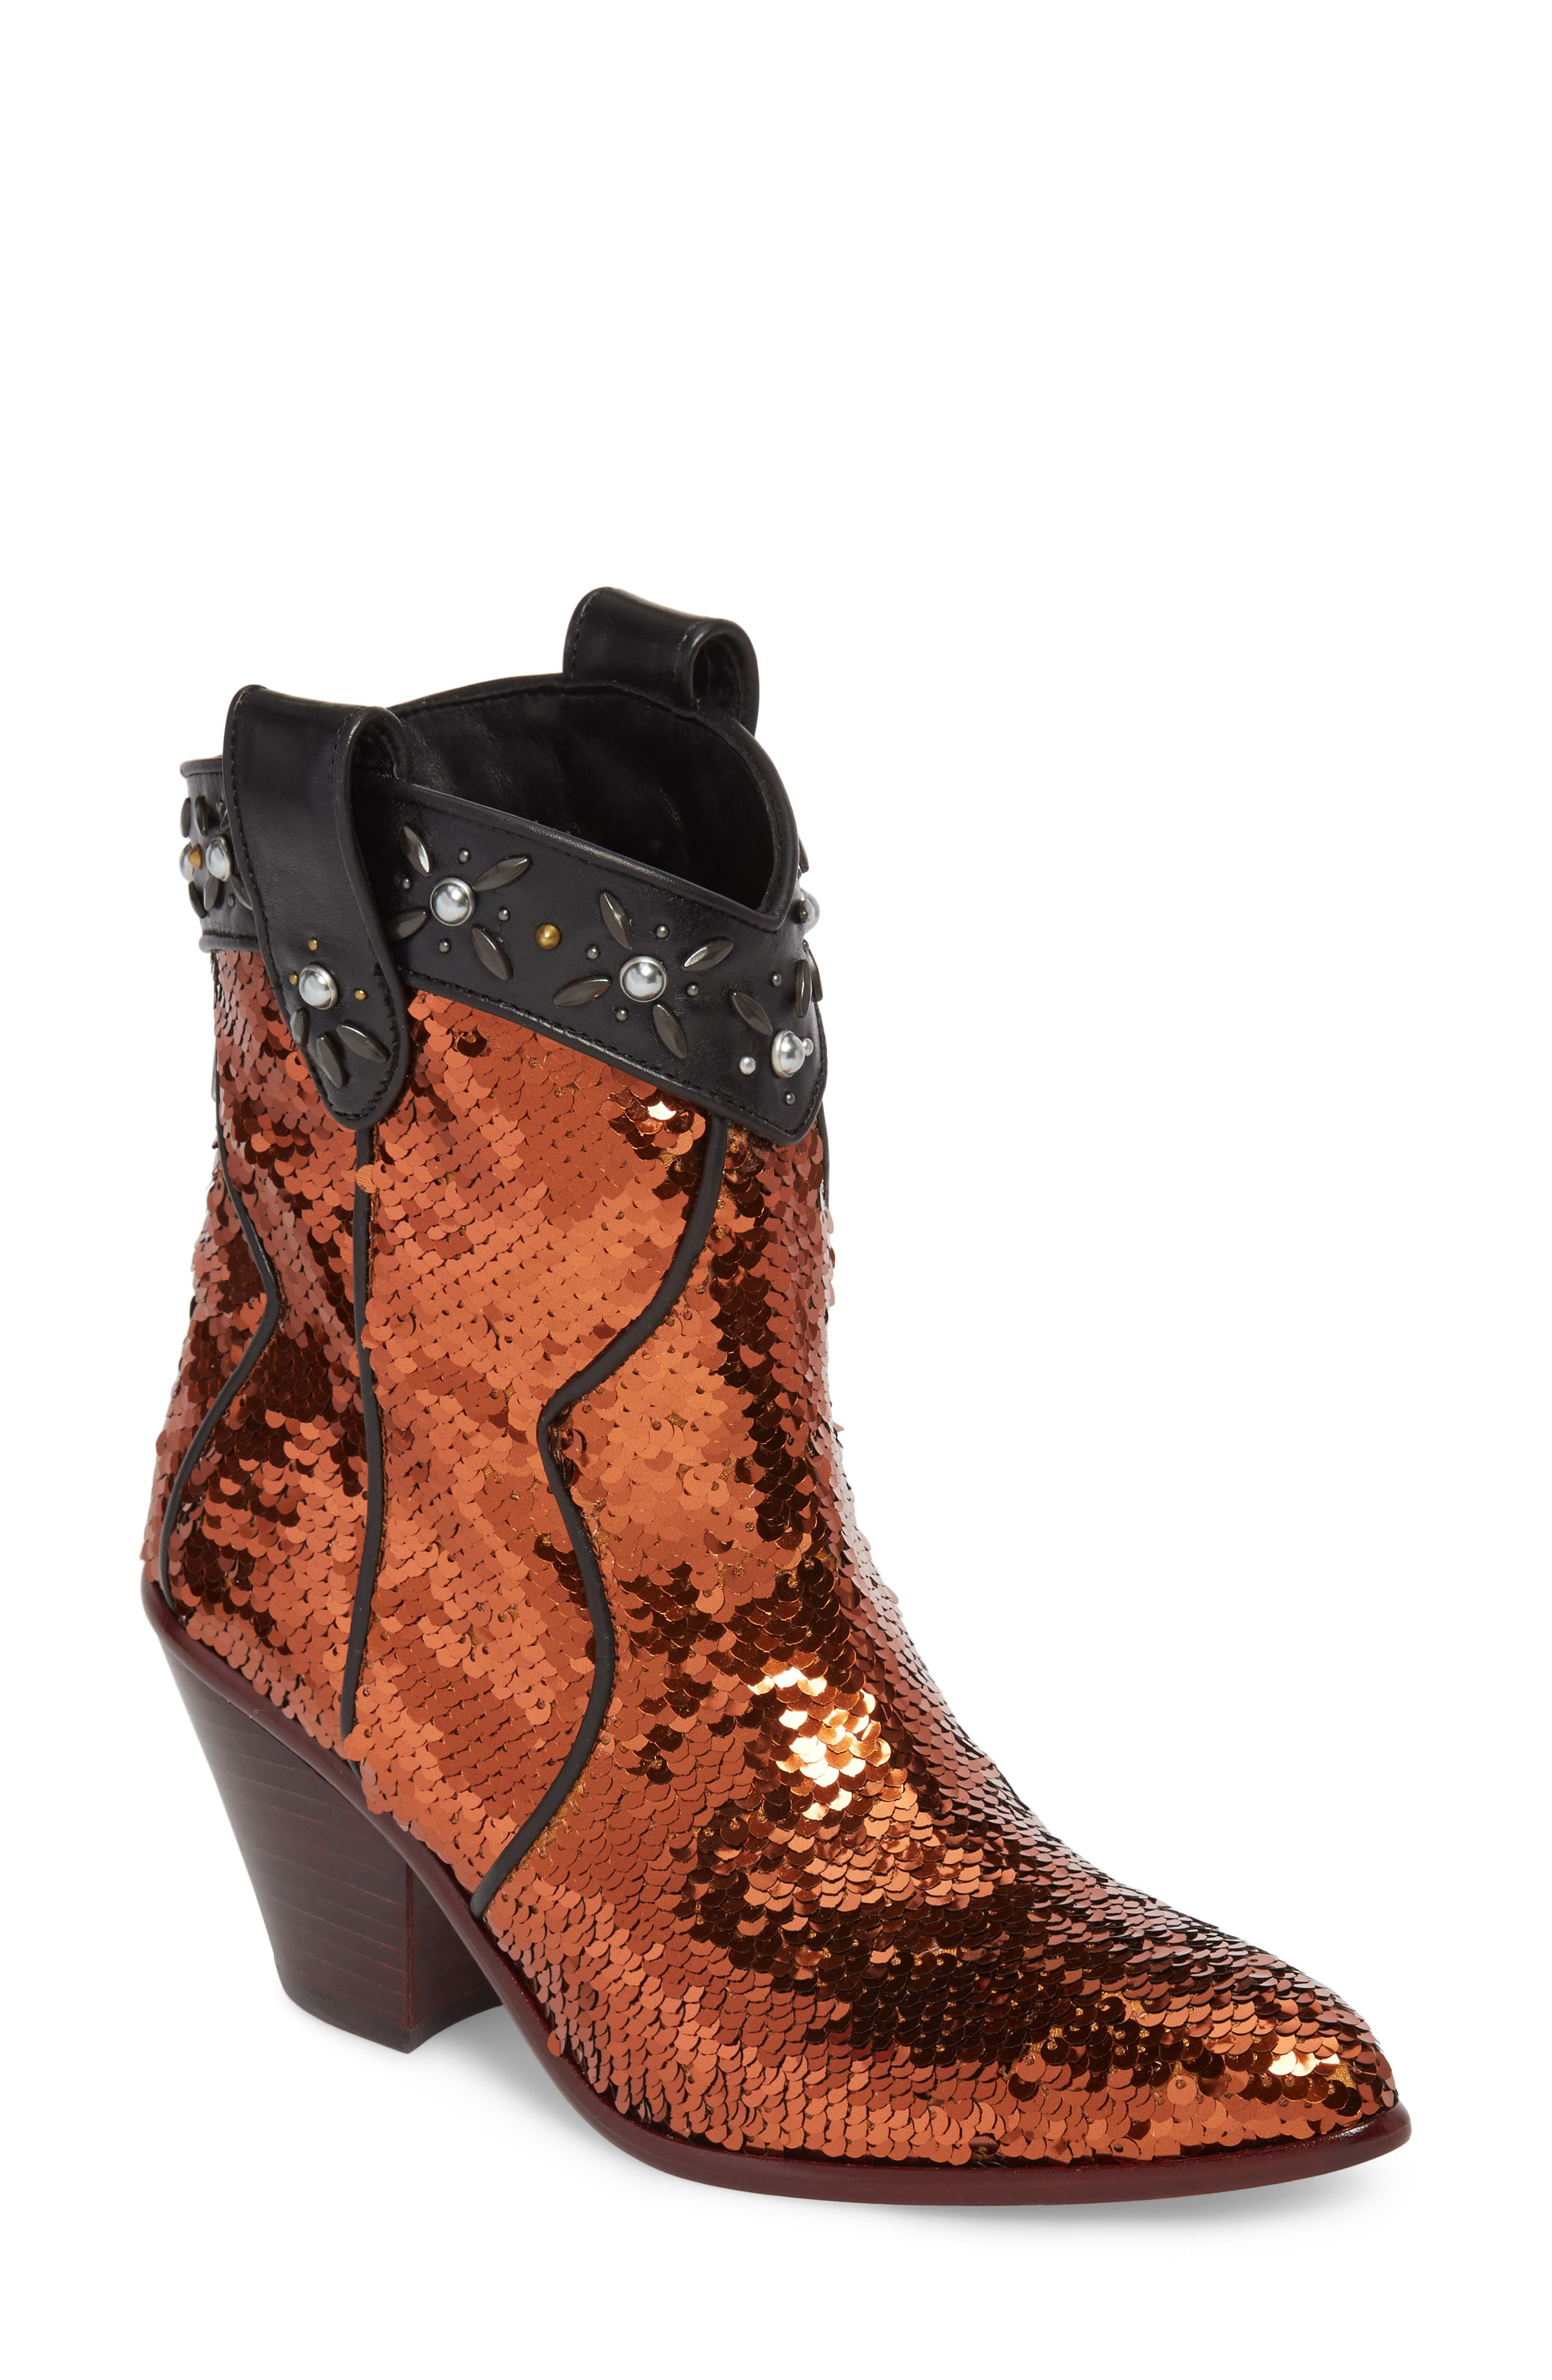 Alternate Image 1 Selected - COACH Sequin Embellished Western Bootie (Women)